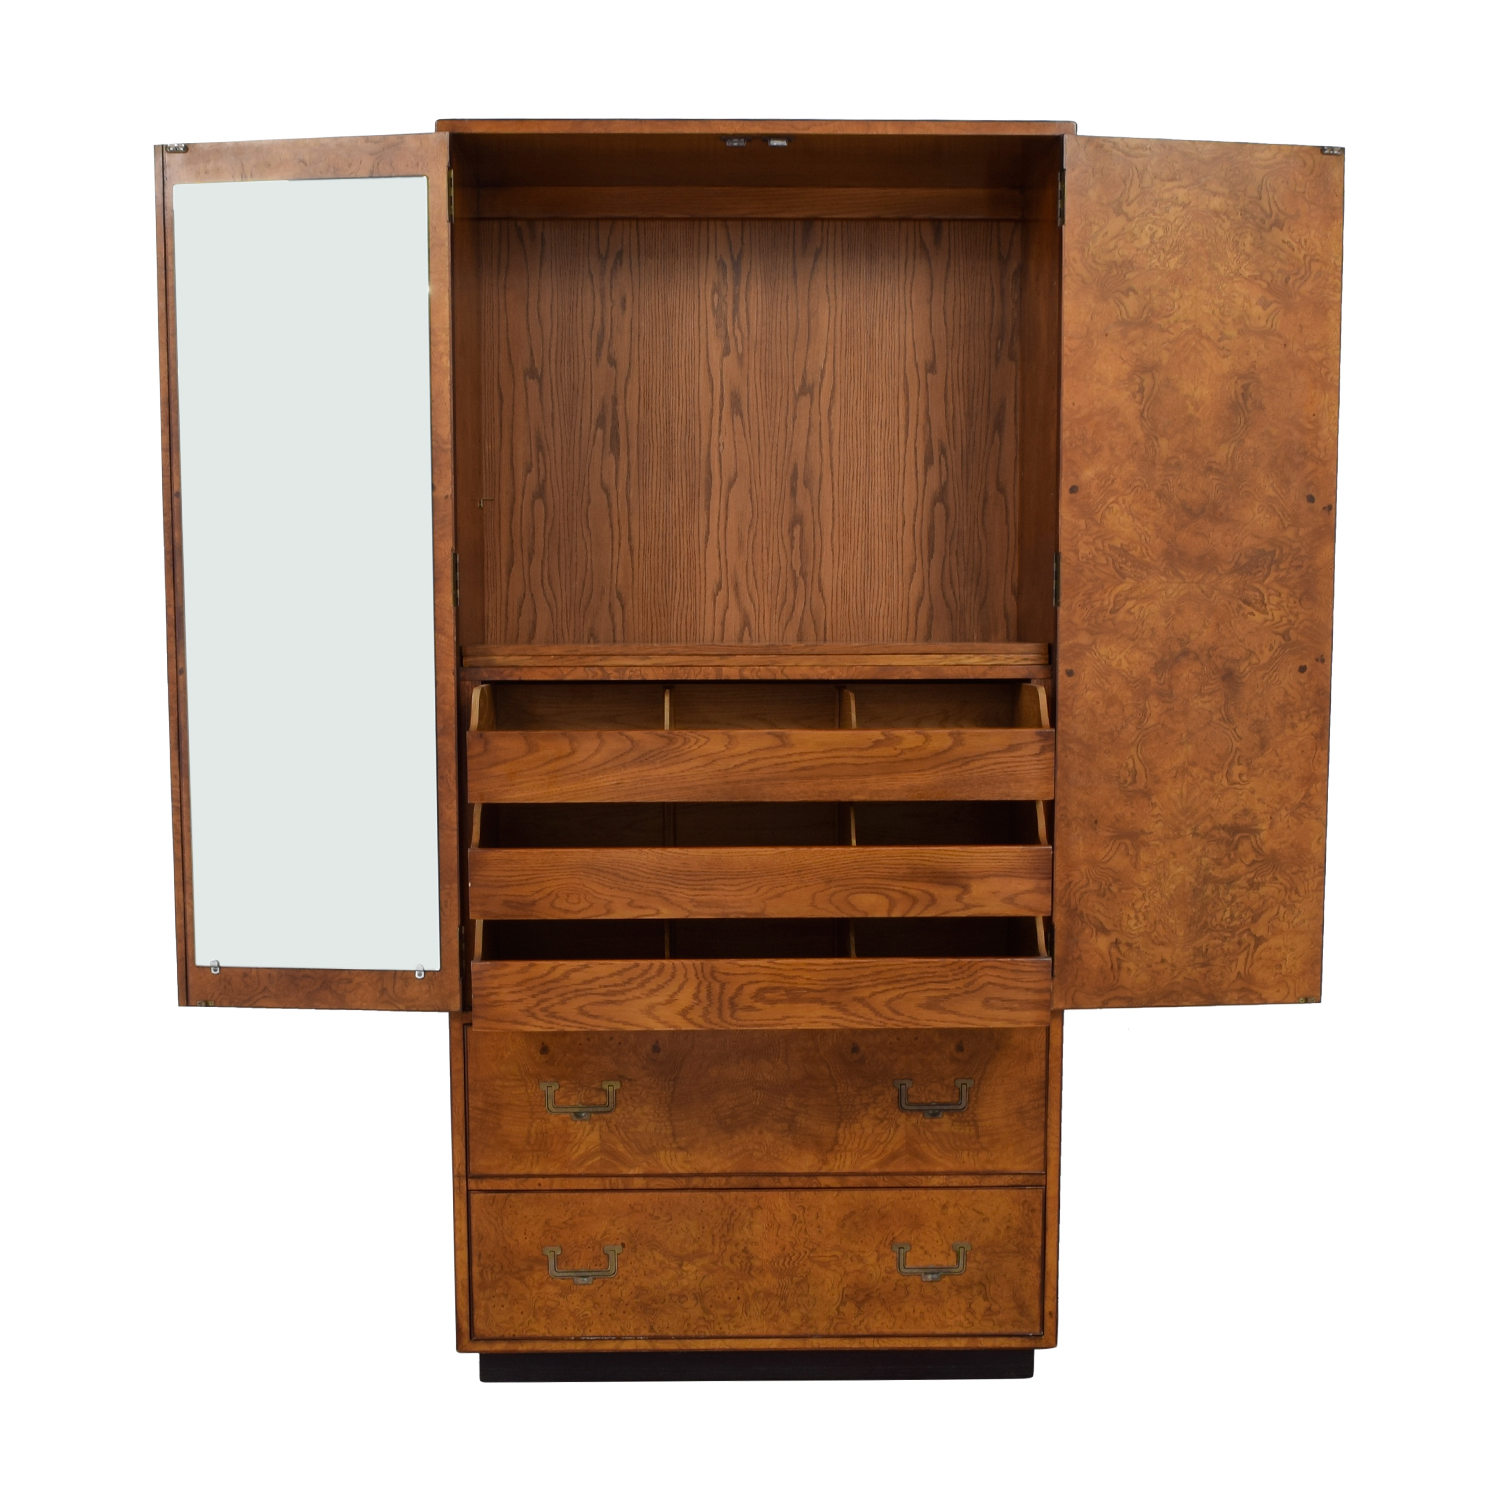 John Widdicomb & Co. Wardrobe Wood Armoire / Wardrobes & Armoires